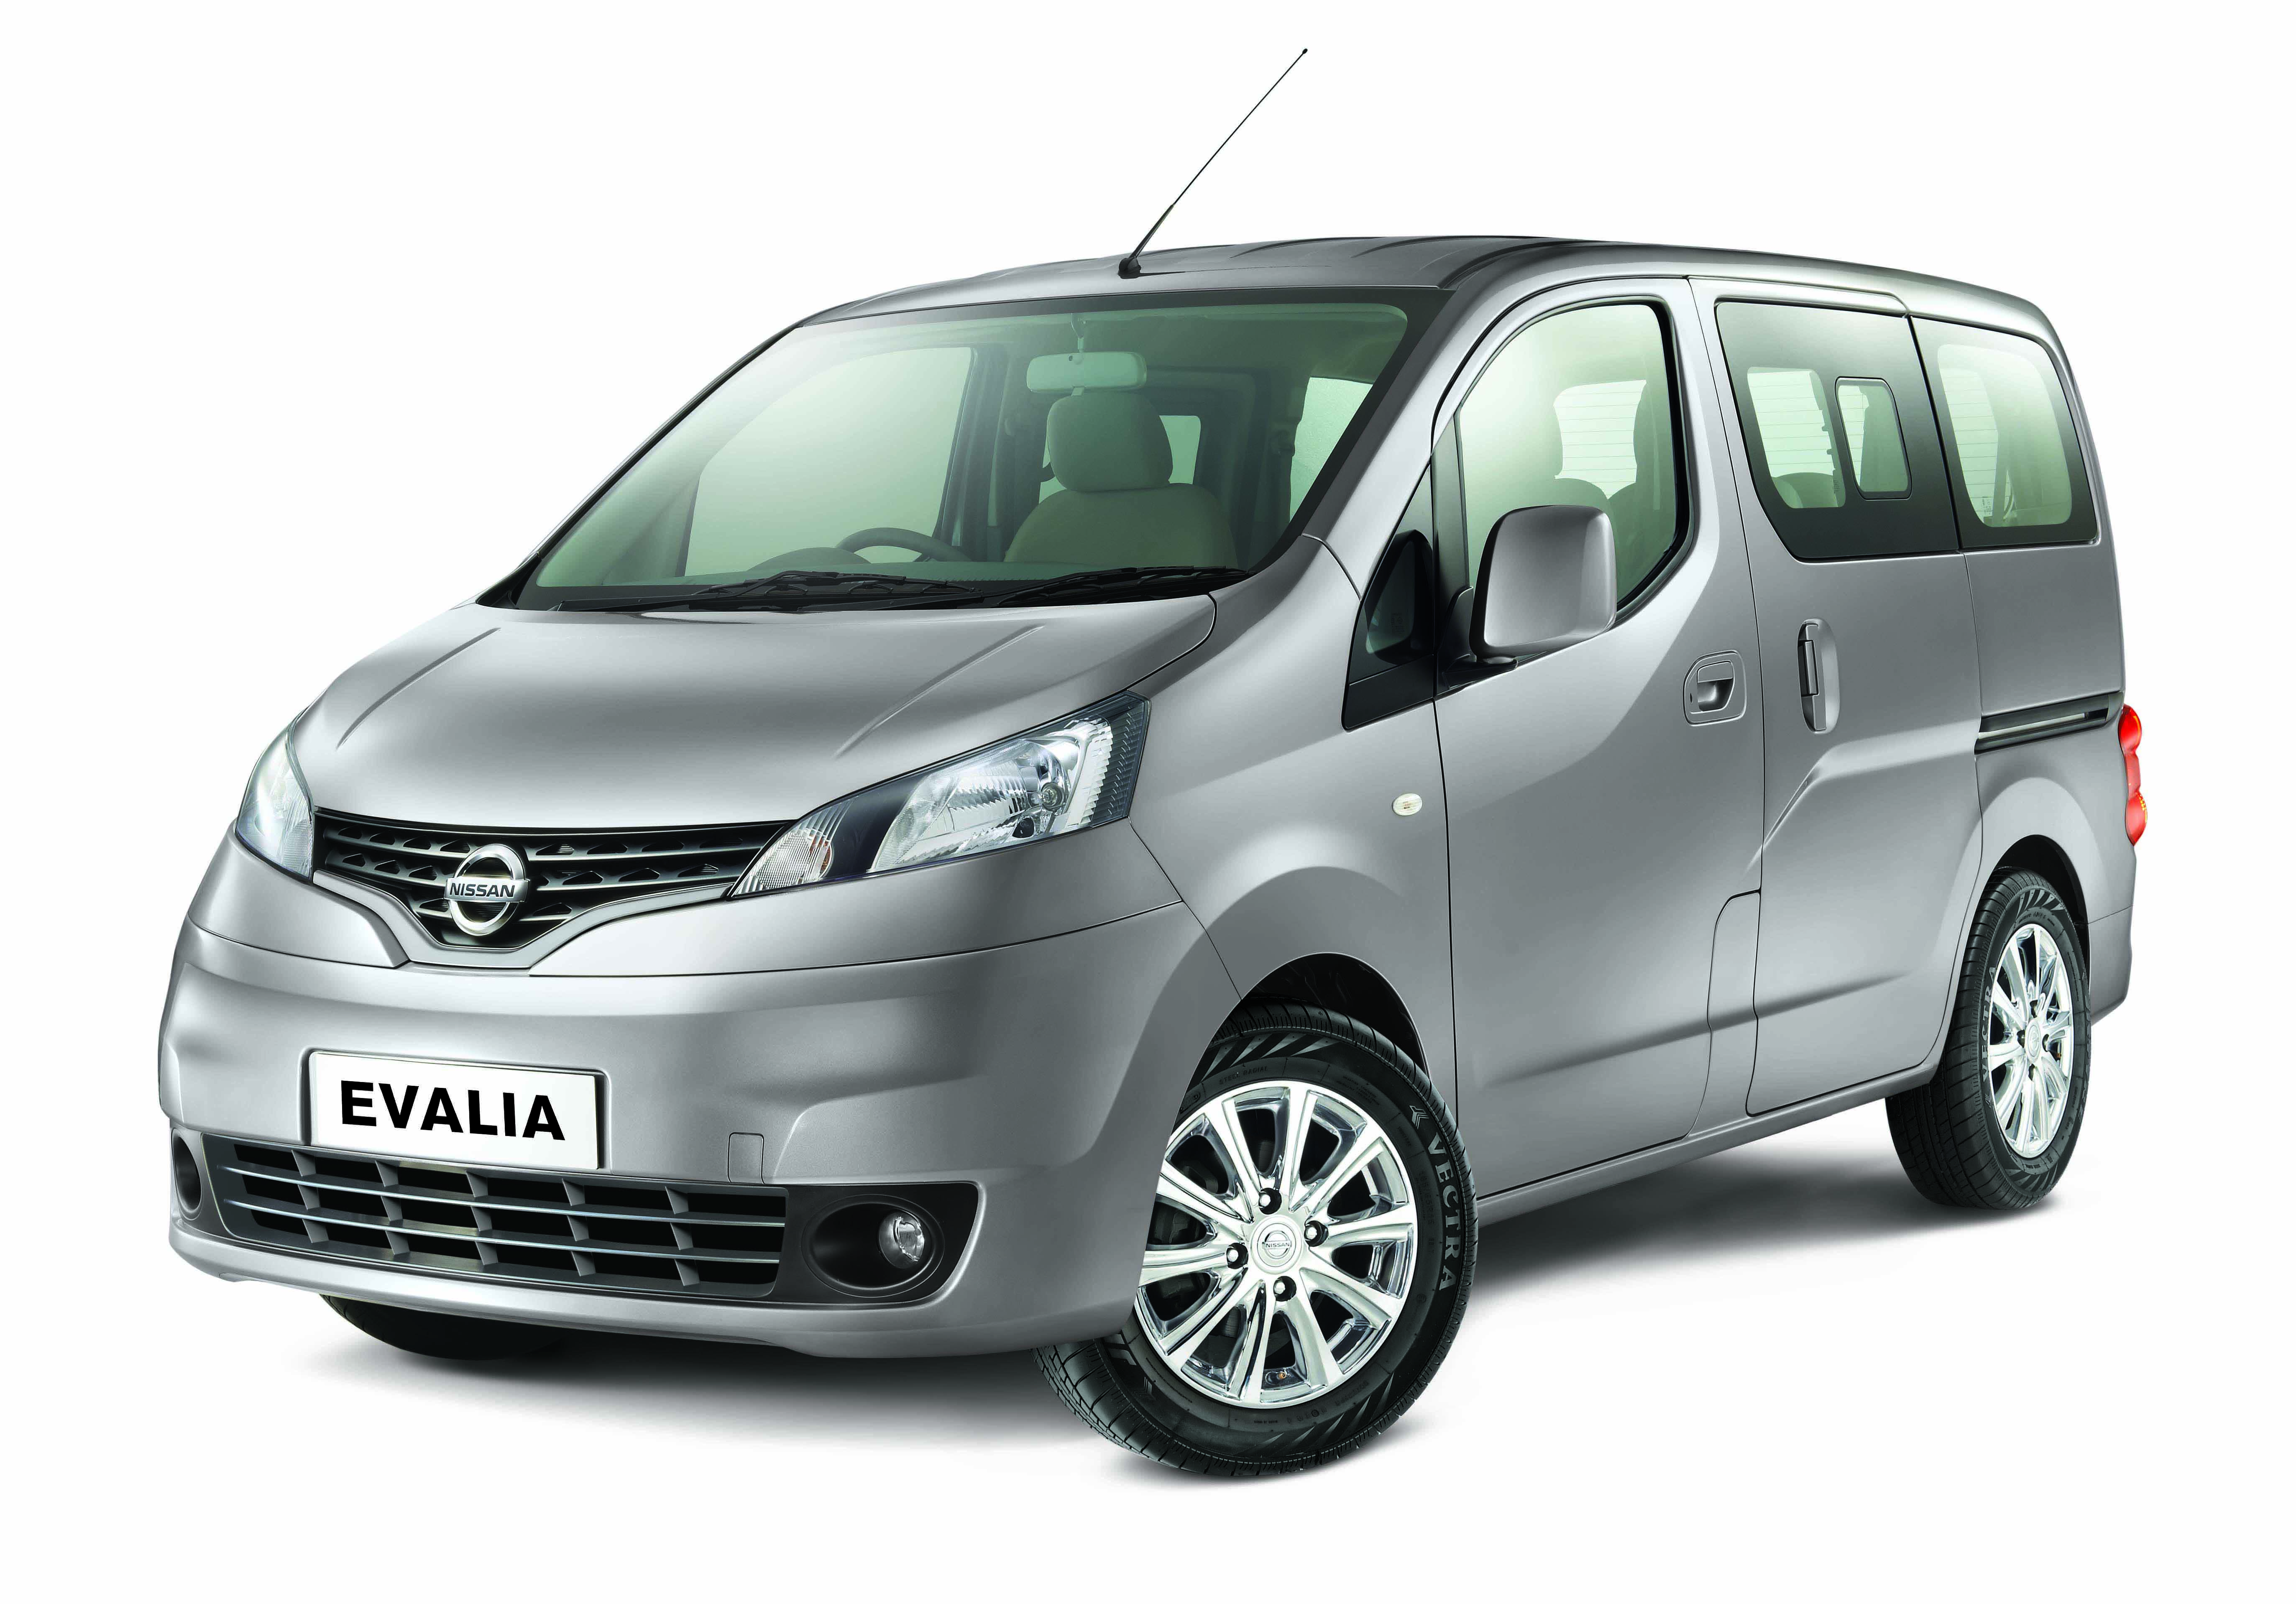 New 2013 Nissan Evalia Xv Mpv Photo Gallery Autocar India